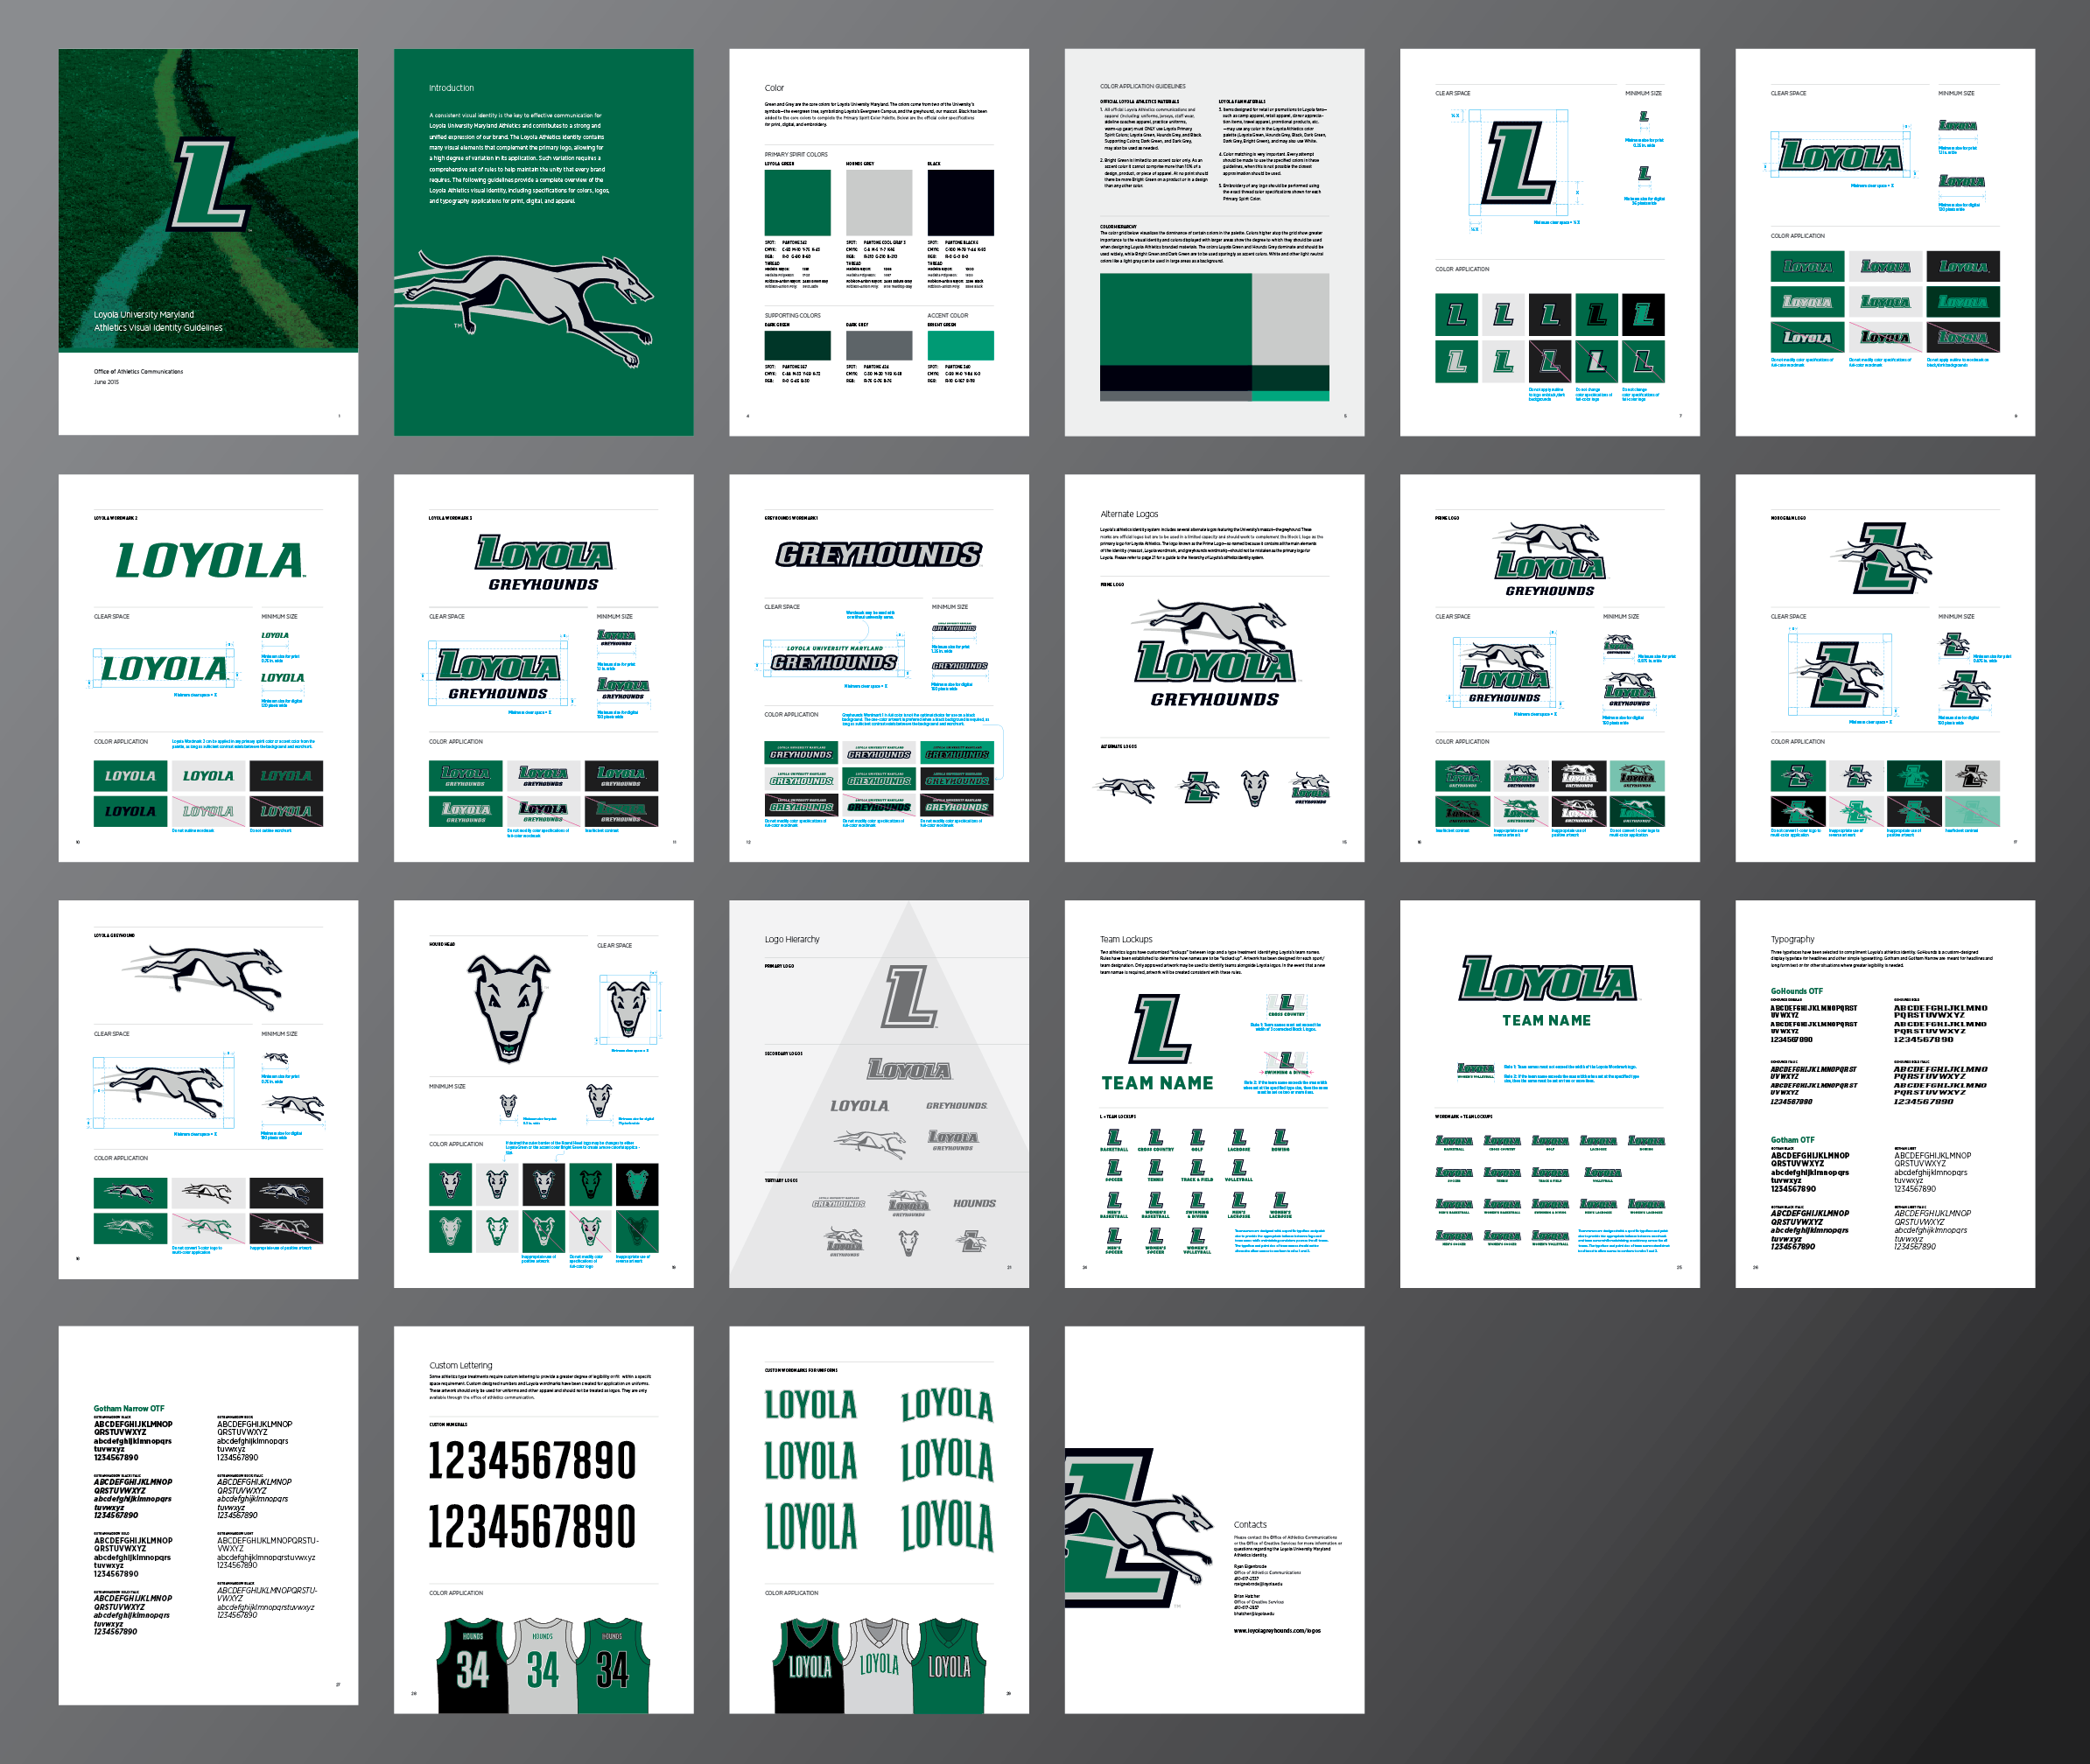 Loyola_Greyhounds_BrandGuide2015.png